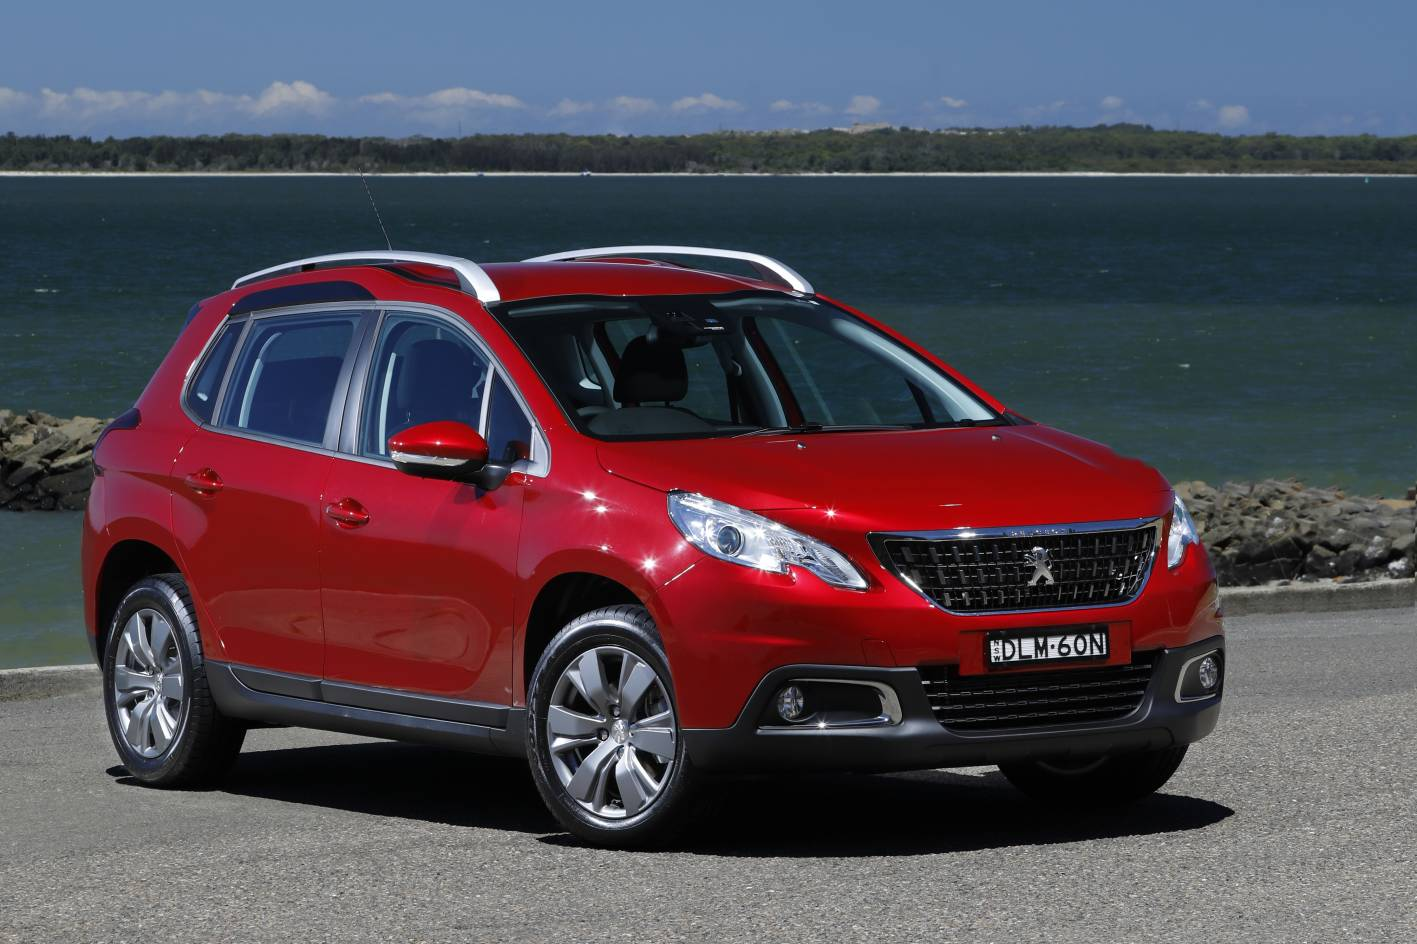 new look peugeot 2008 pricing and specification announced. Black Bedroom Furniture Sets. Home Design Ideas